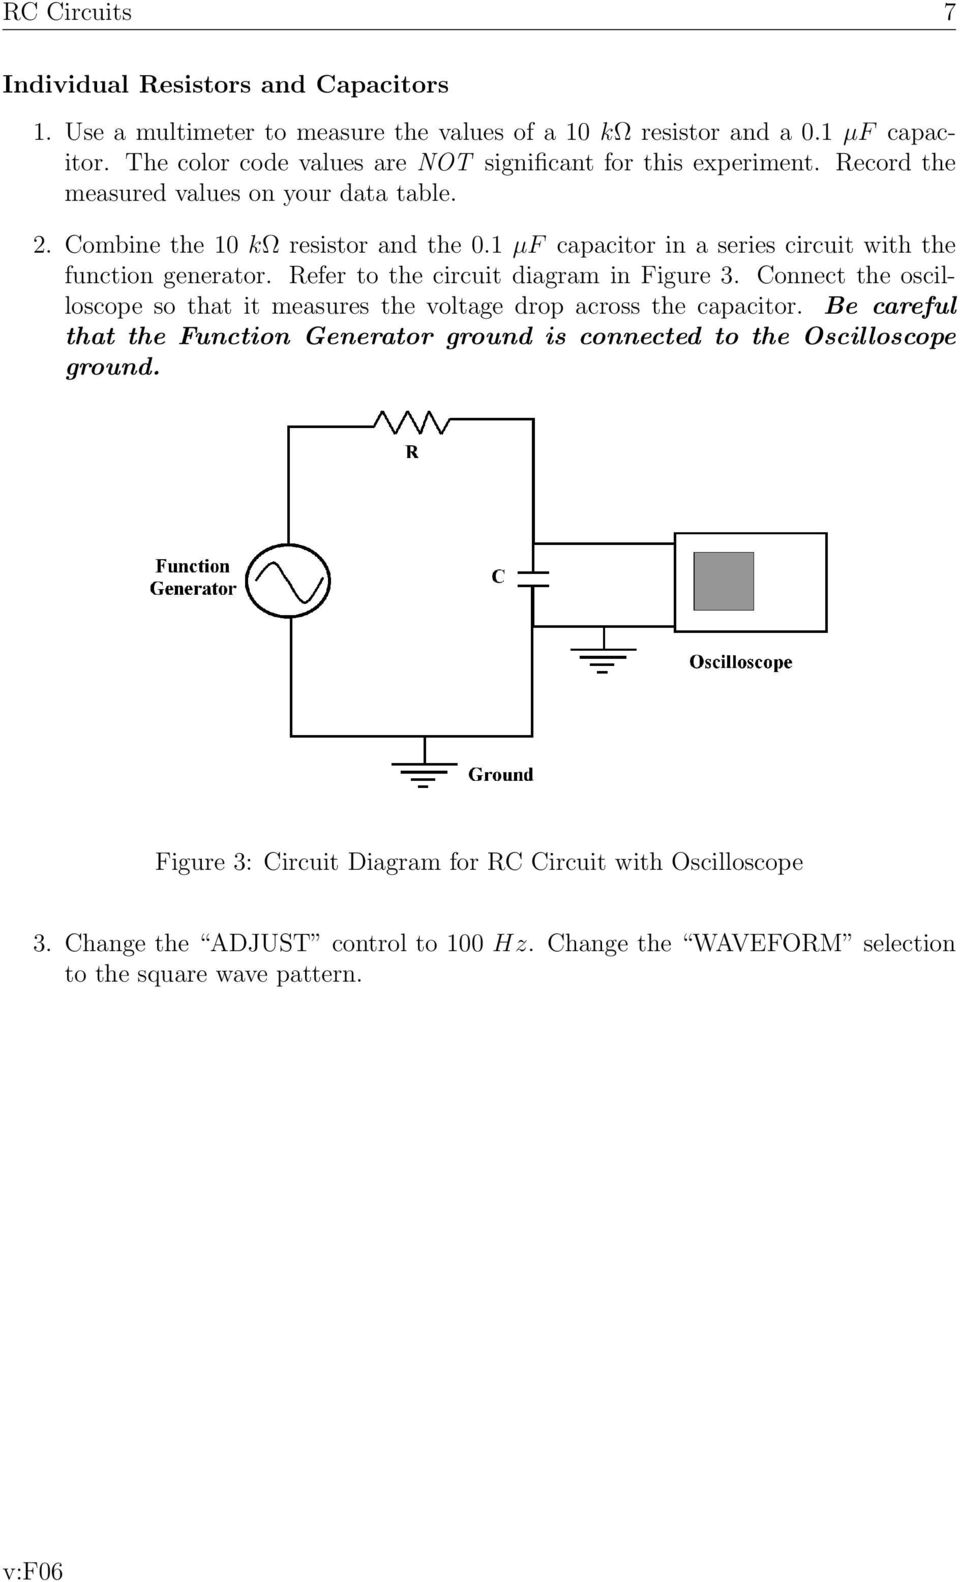 hight resolution of 1 f capacitor in a series circuit with the function generator refer to the circuit